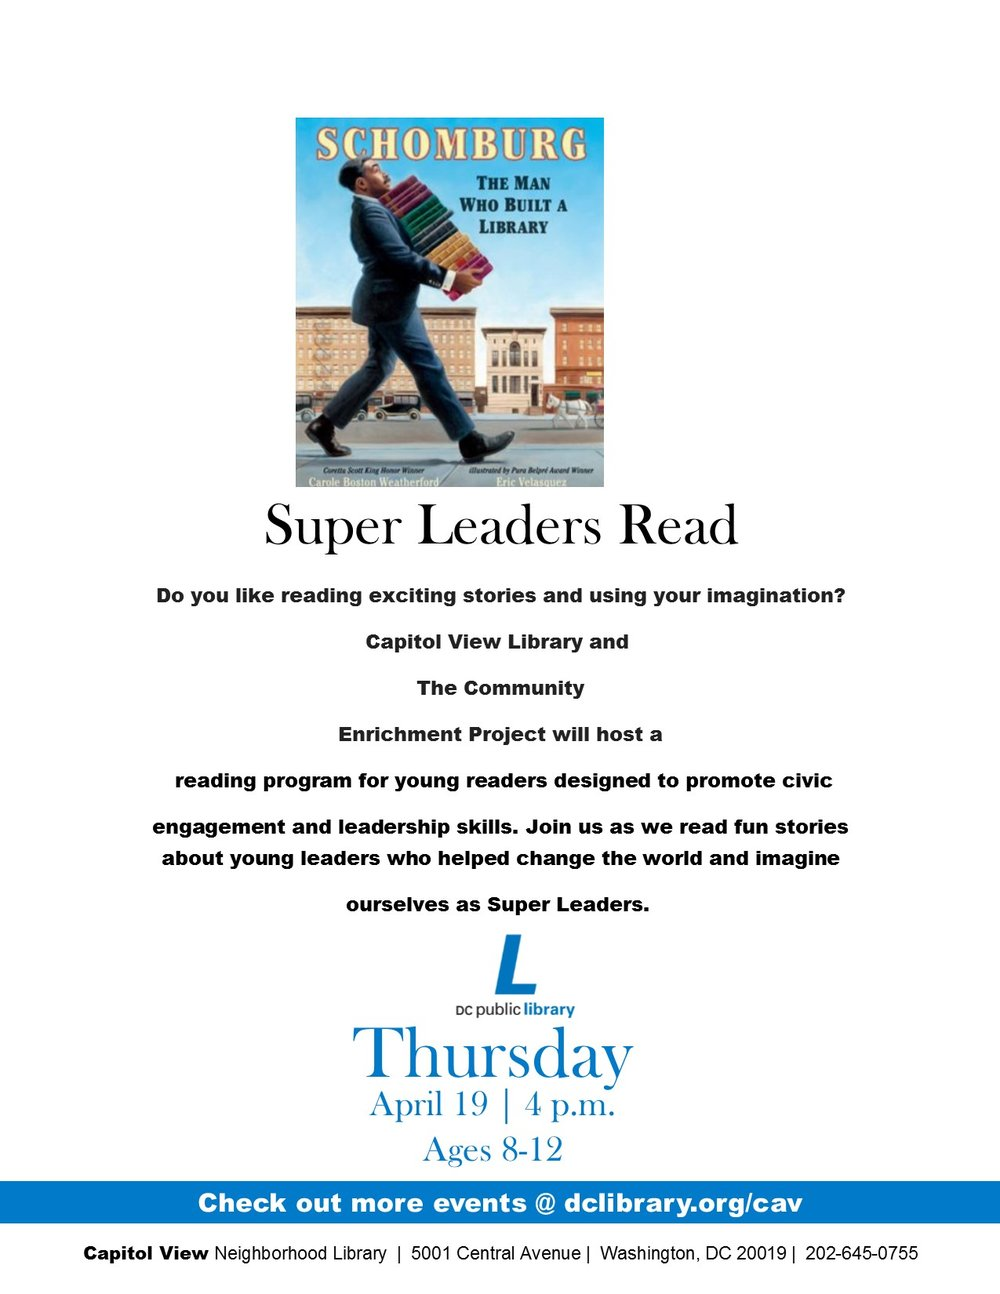 Super Leaders Read April 17 Schomburg (1).jpg